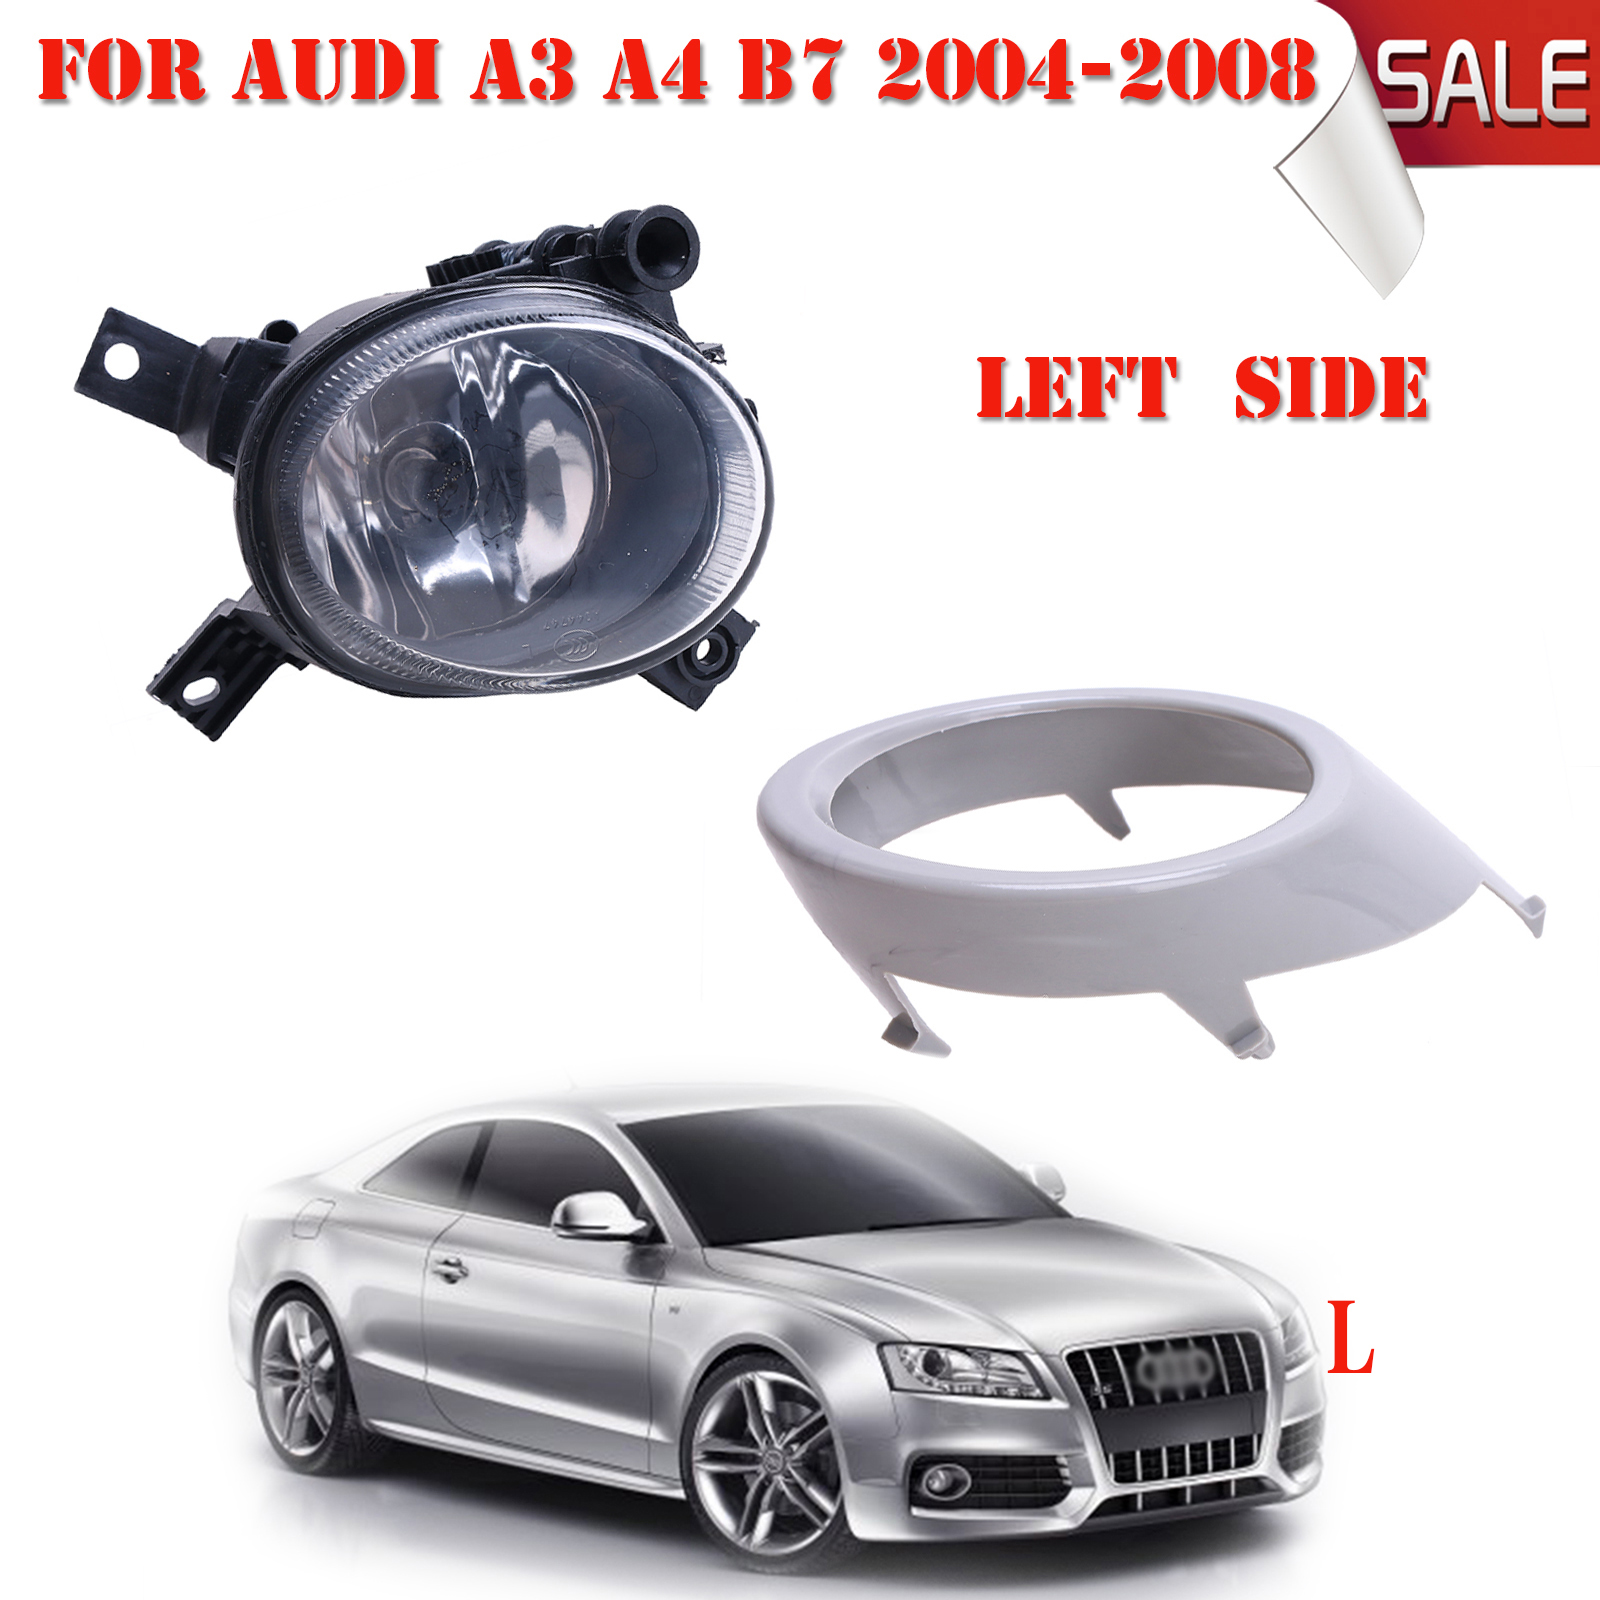 Left Side Front Bumper Grill Cover with Fog Light Lamp For Audi A3 A4 B7 2004-2008 with Bulbs H11 Car Accessories #P327 car led light for vw golf 5 golf mk5 2004 2005 2006 2007 2008 2009 left side front led fog light fog lamp with led bulbs